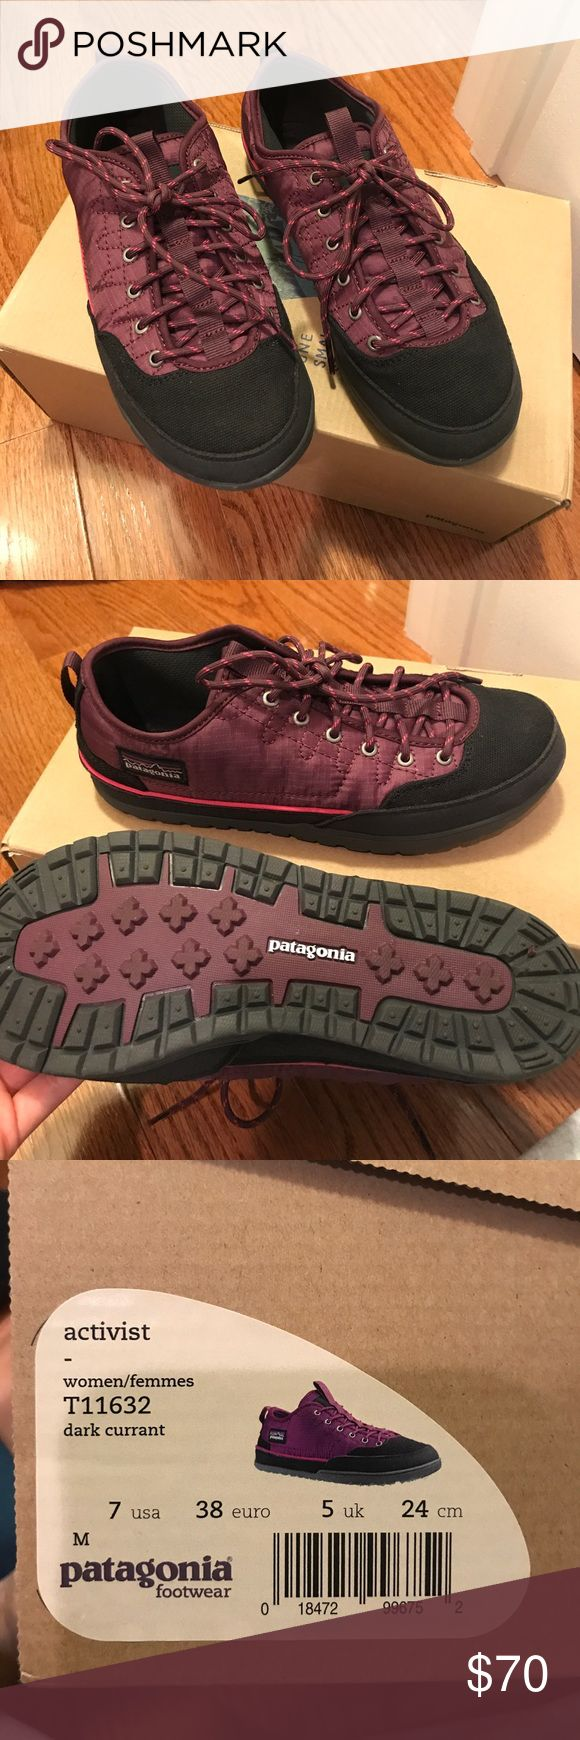 Patagonia shoes Still in original box. Never worn. Great for outdoor activities! Patagonia Shoes Athletic Shoes